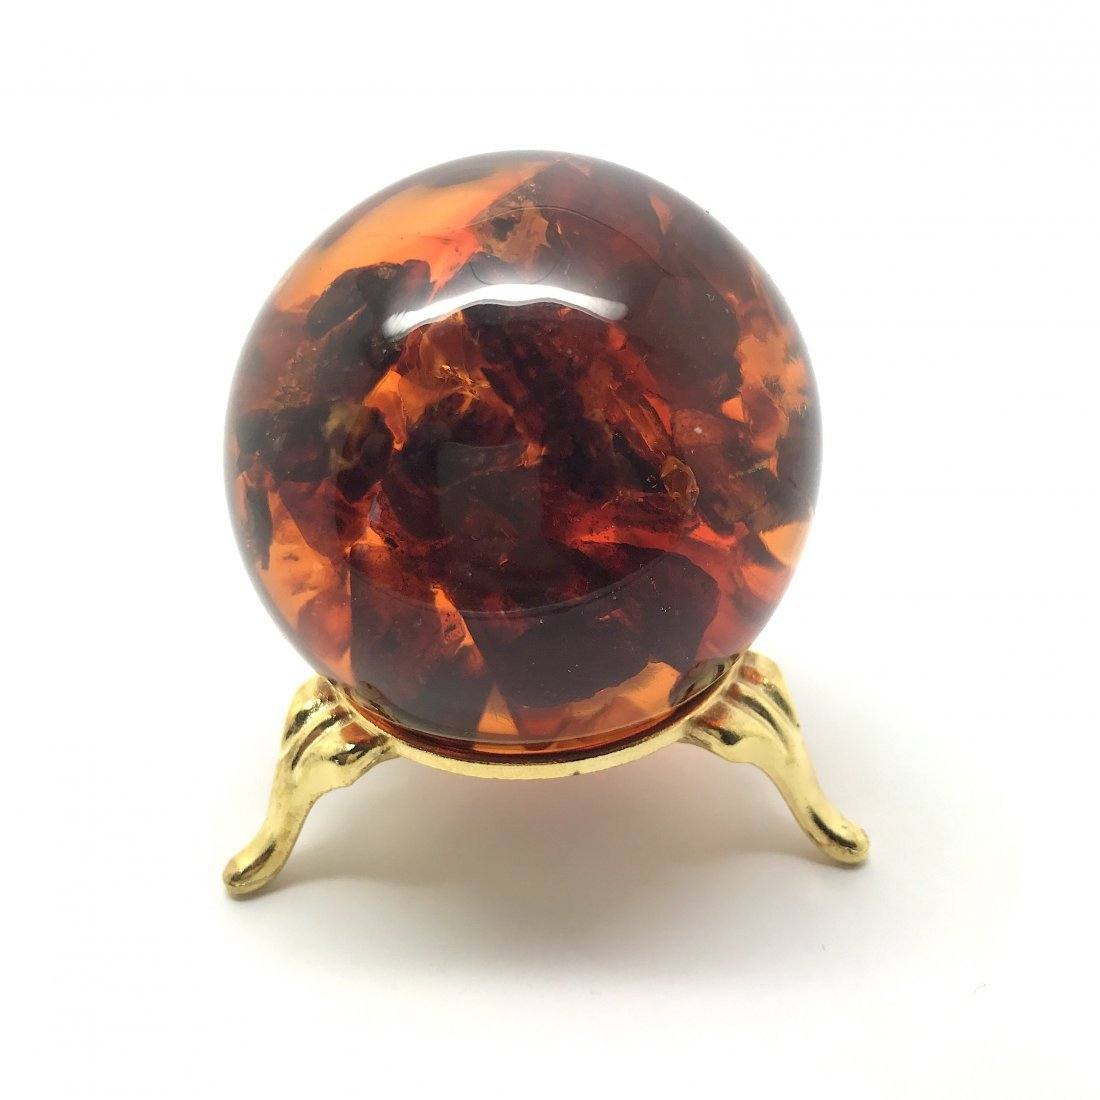 Spectacular Baltic amber ball sphere ø54mm 103 gr